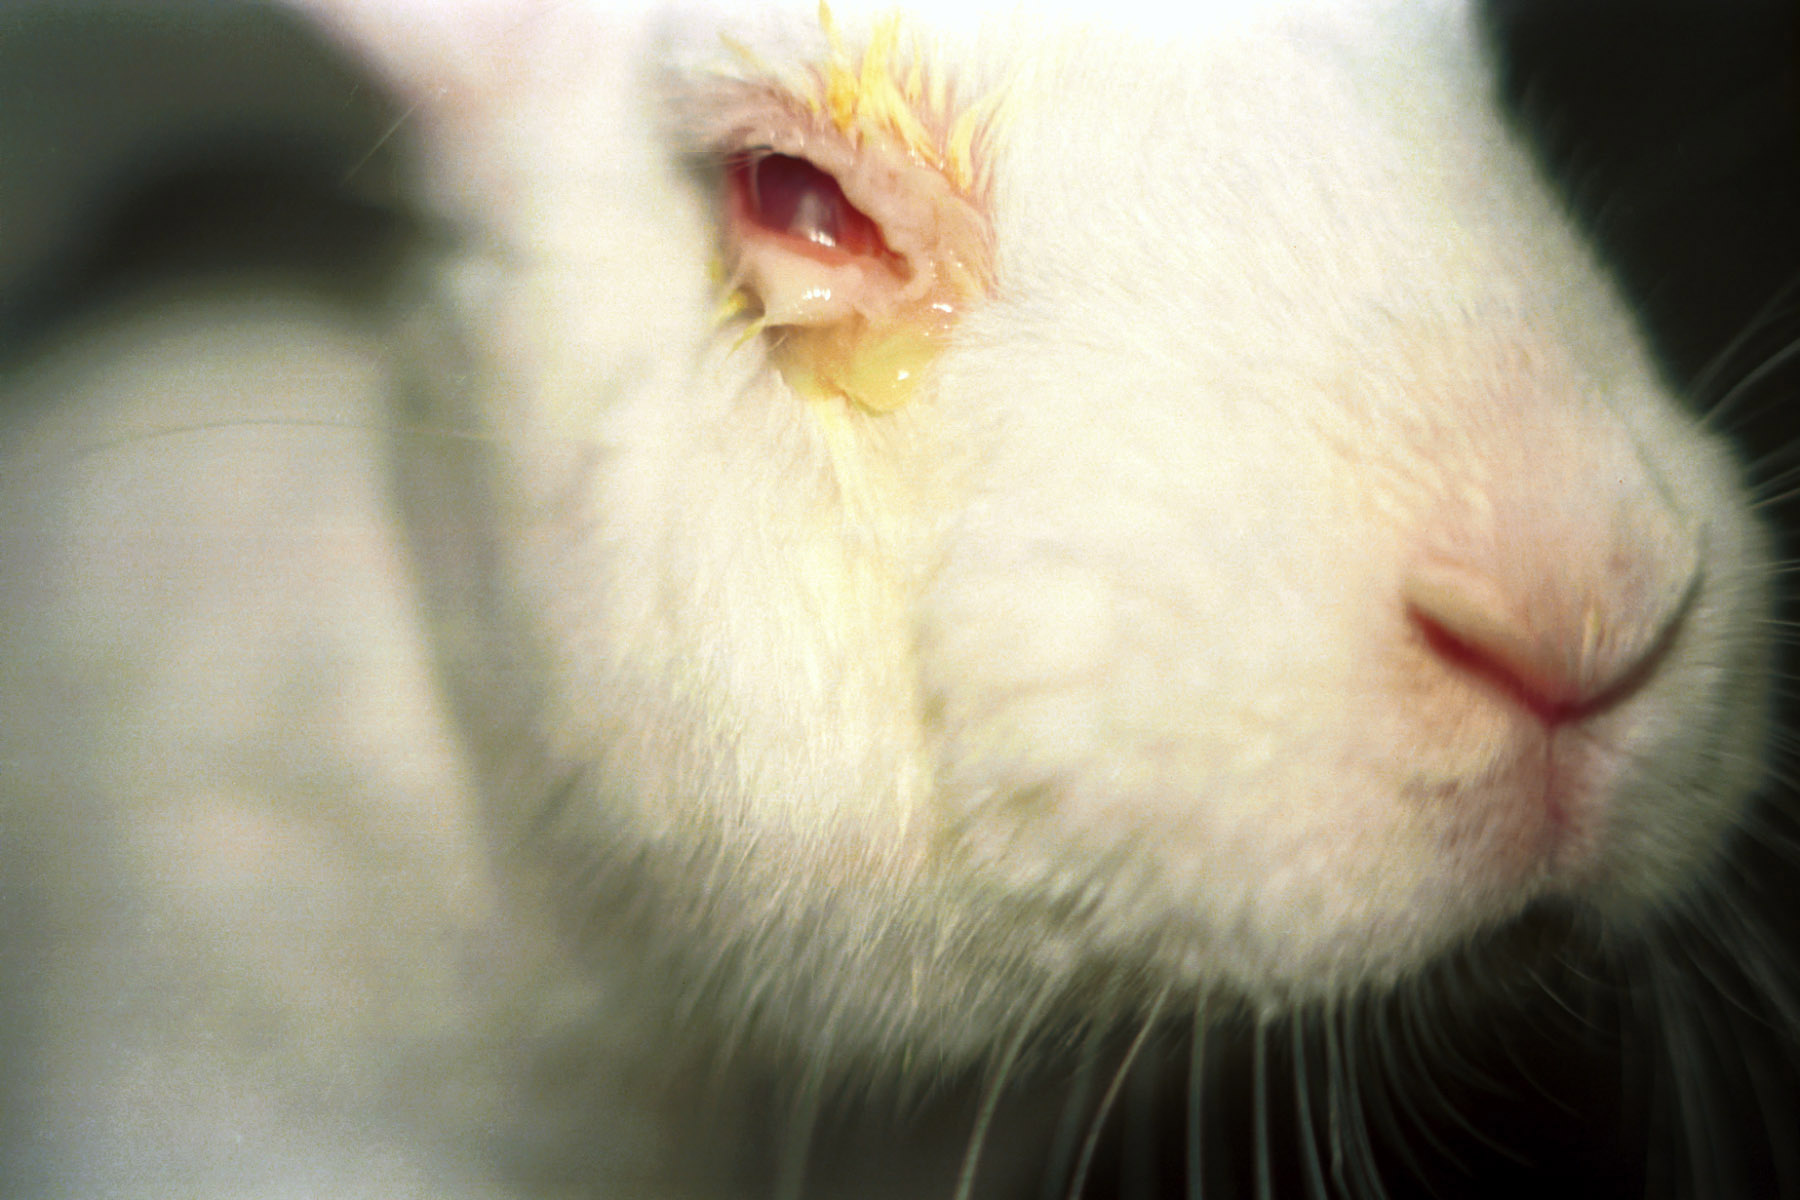 animal testing cosmetics testing Drugs and cosmetics rules (second amendment), 2014 has banned animal testing of cosmetics and will develop non-animal methods to test future cosmetic products.